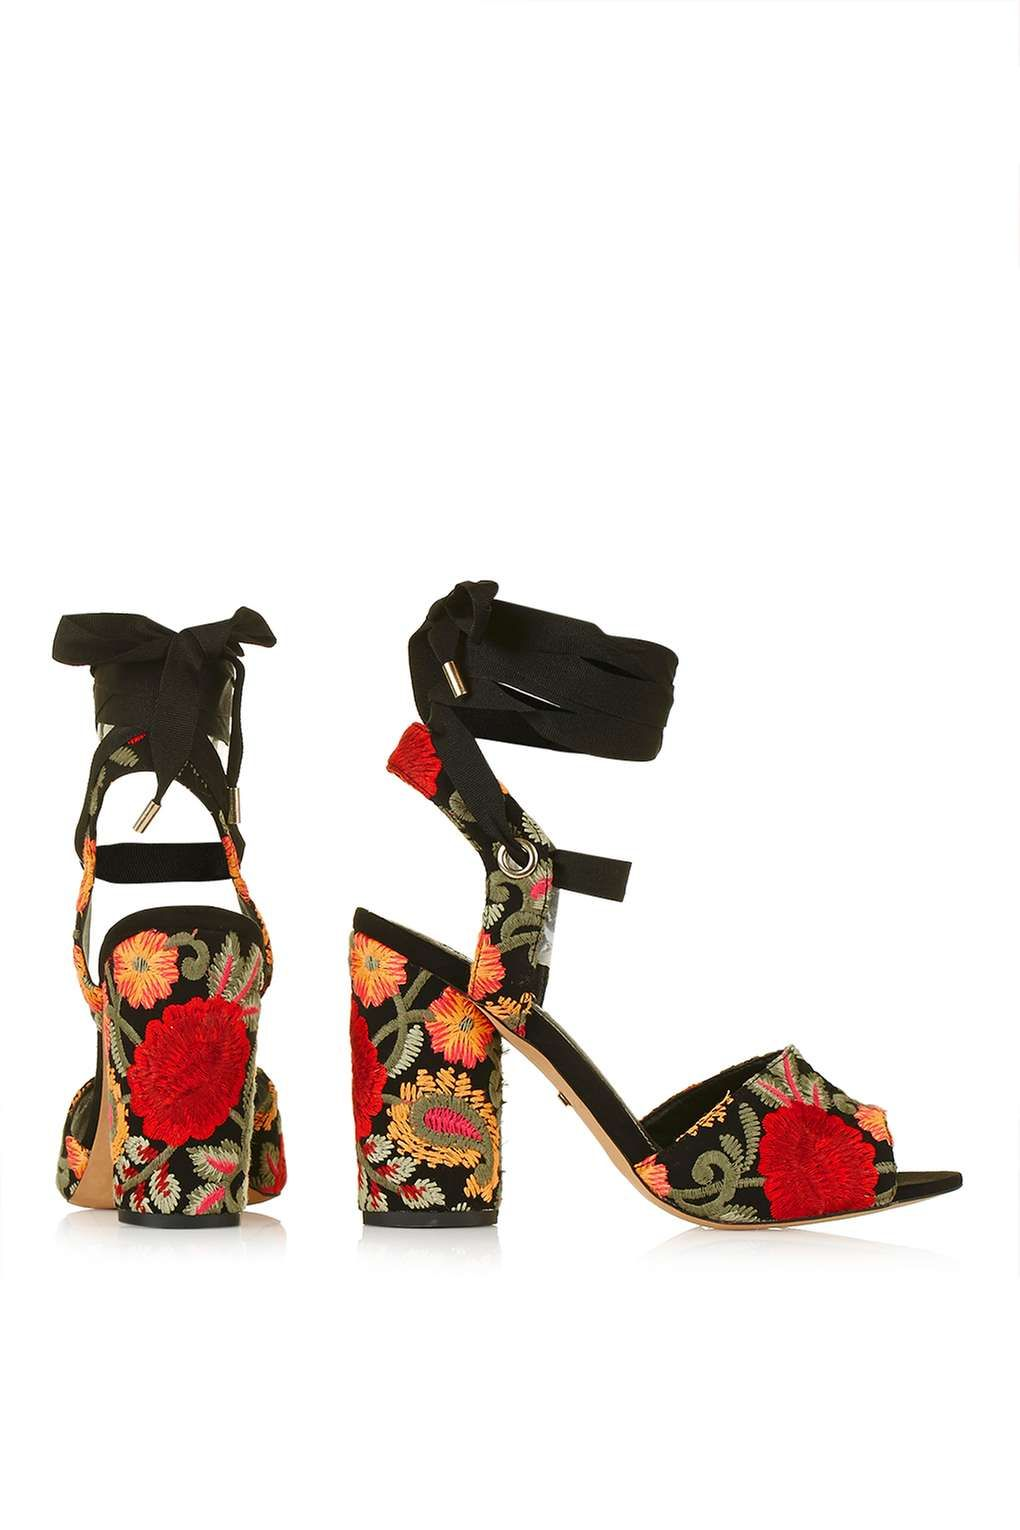 ROYAL Embroidered Sandals - Topshop USA